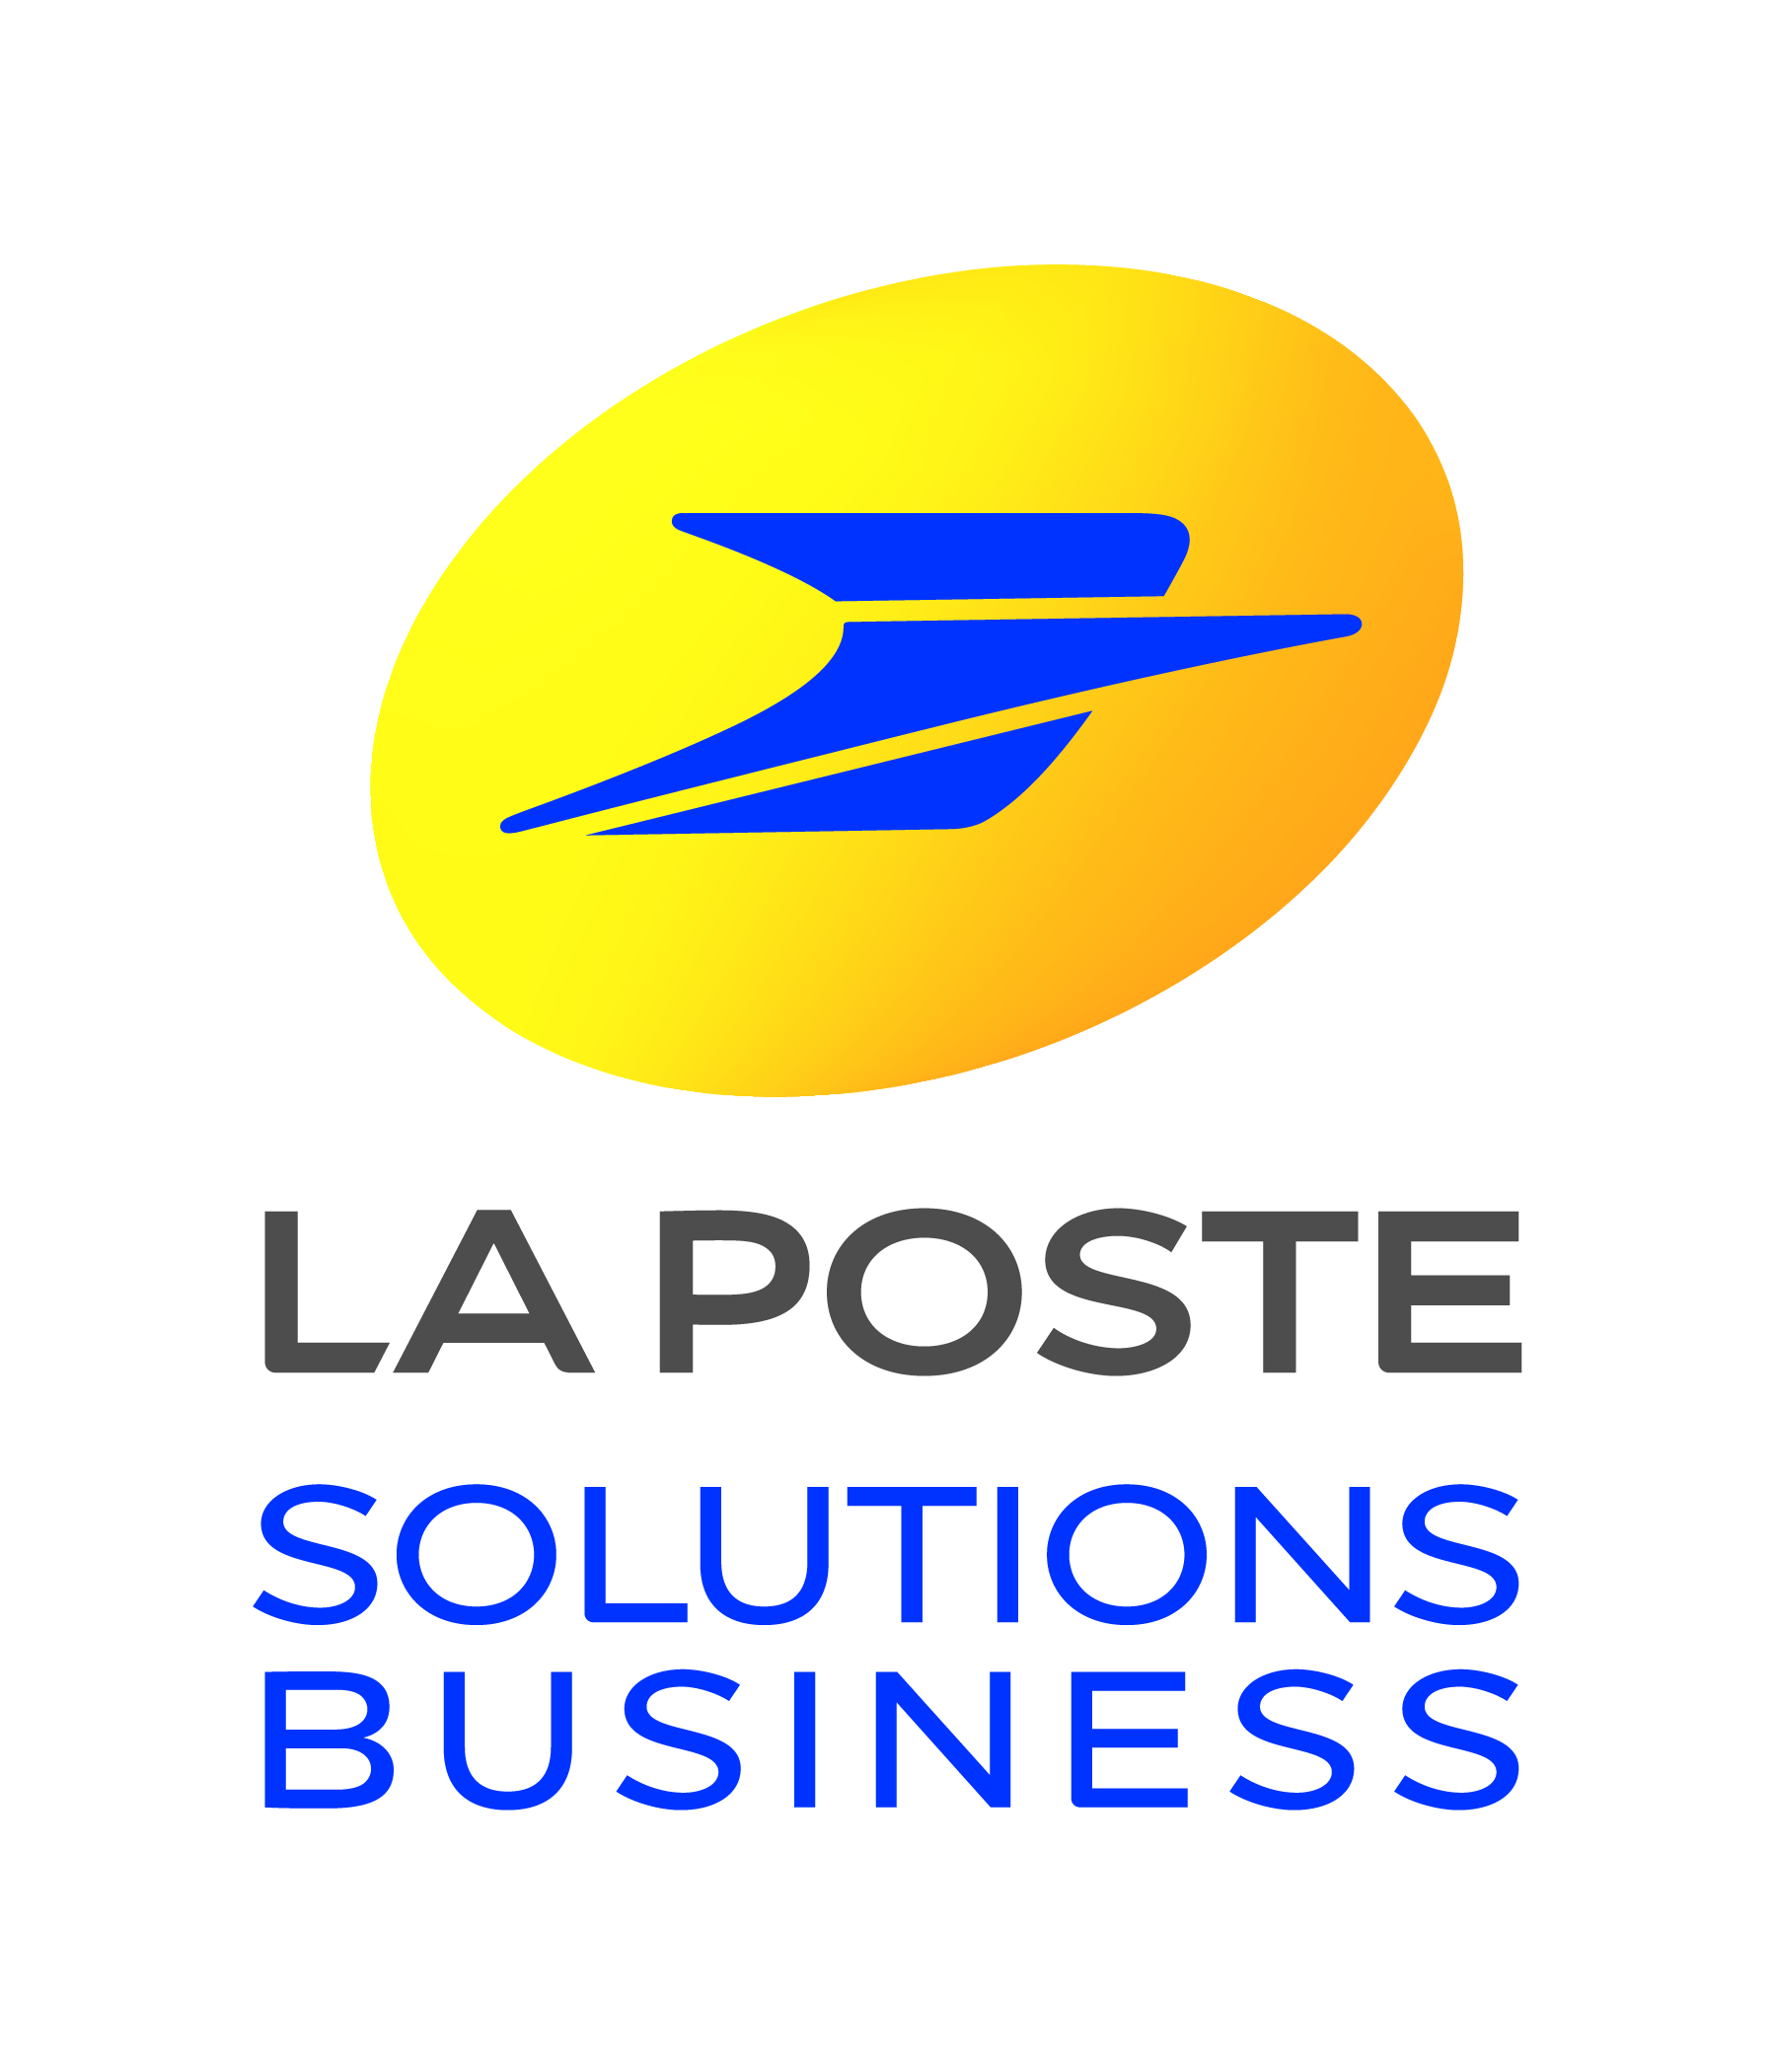 La Poste Business Solutions